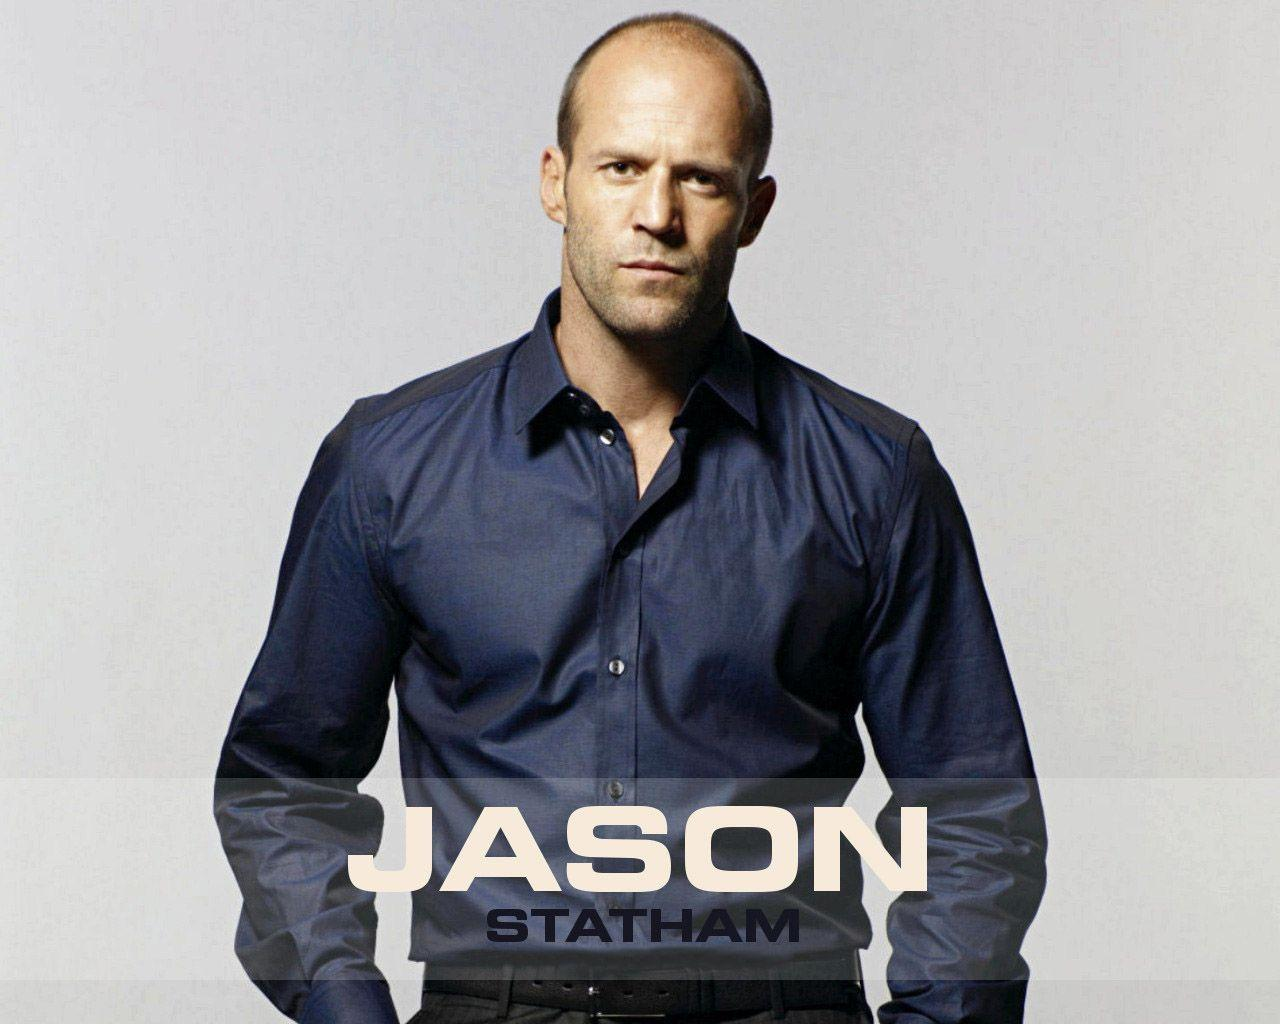 Jason Statham Wallpaper DesktopWallpic.us | High Definition ...